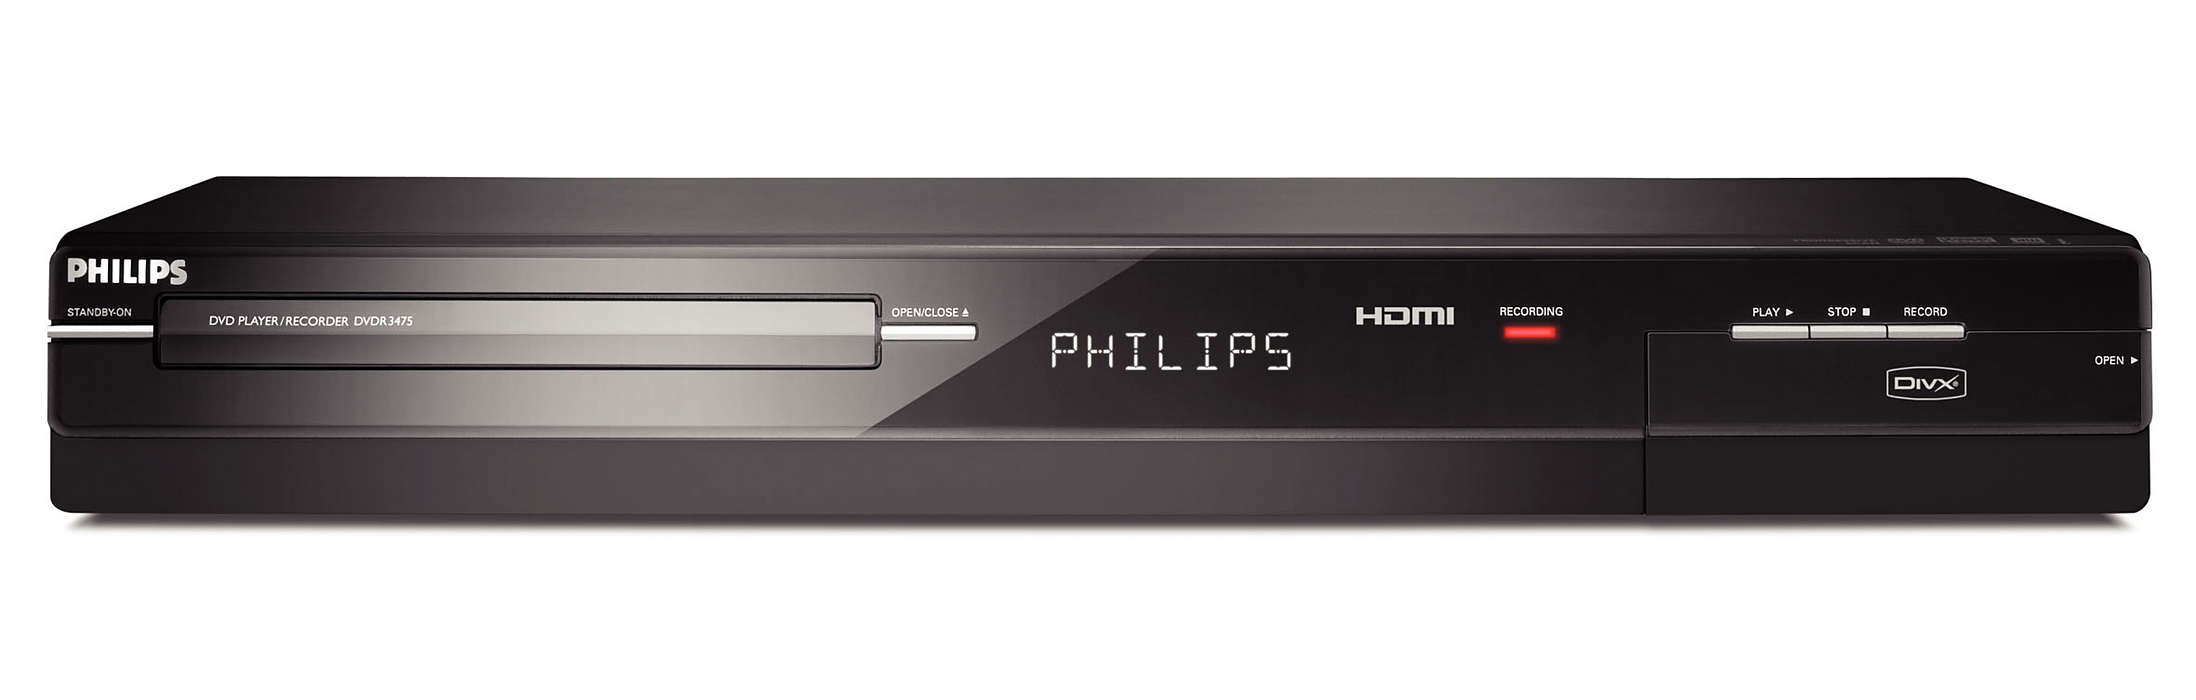 The perfect DVD recorder for any set-top box